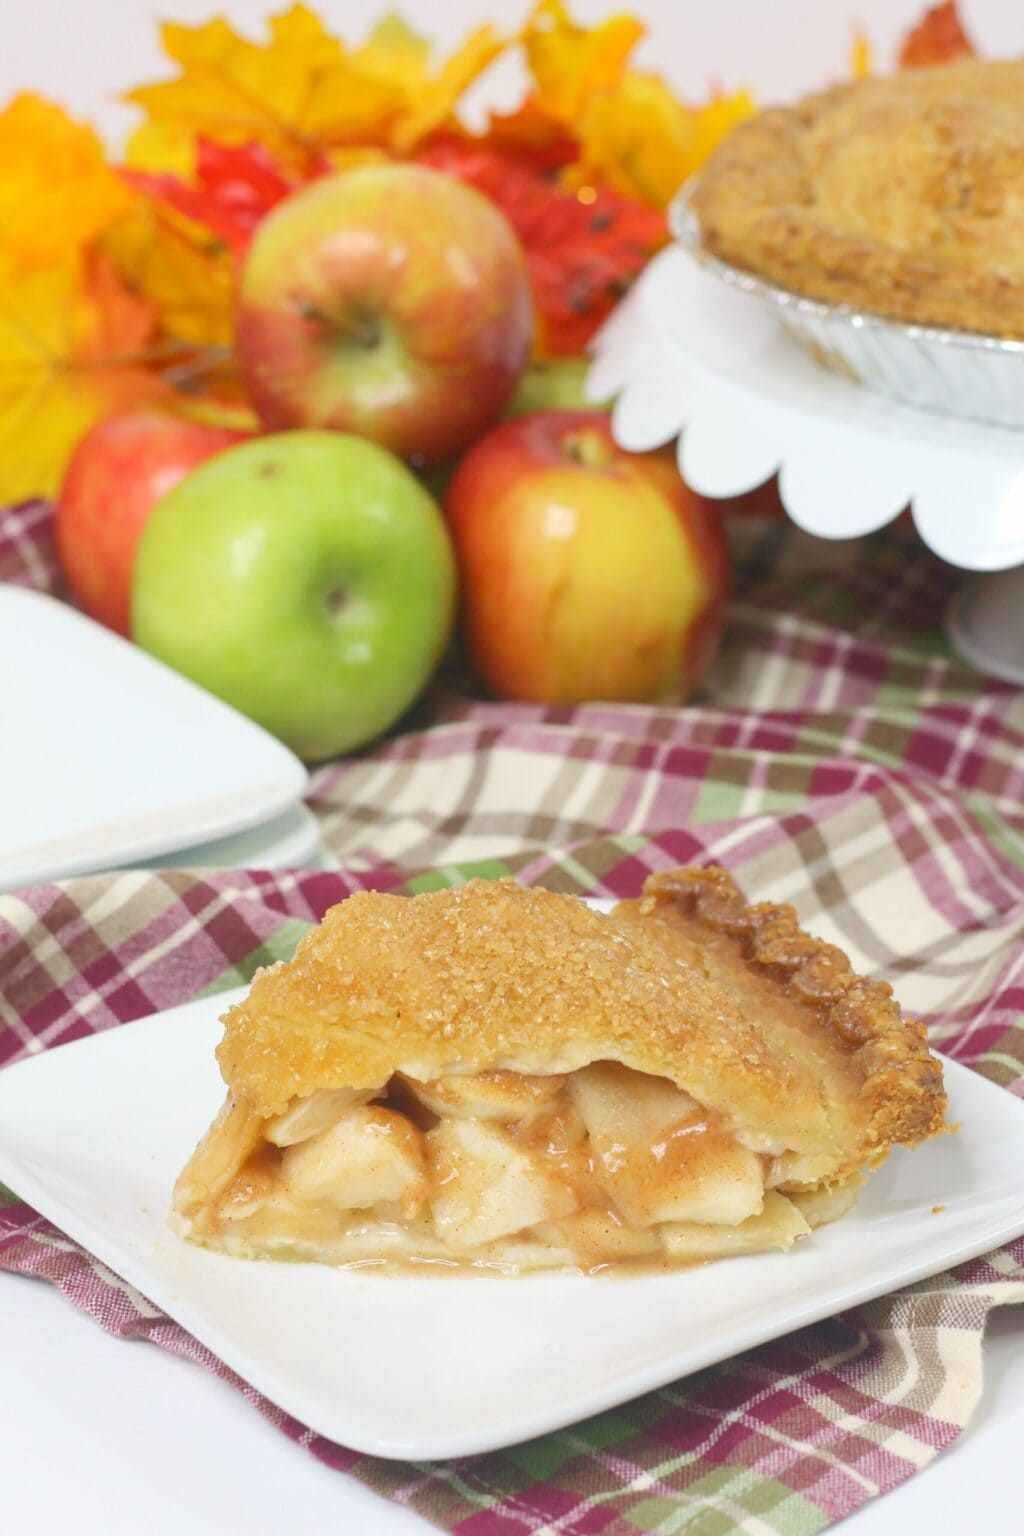 apple pie slice on white plate on top of red plaid napkin next to white cake plate and red and green apples